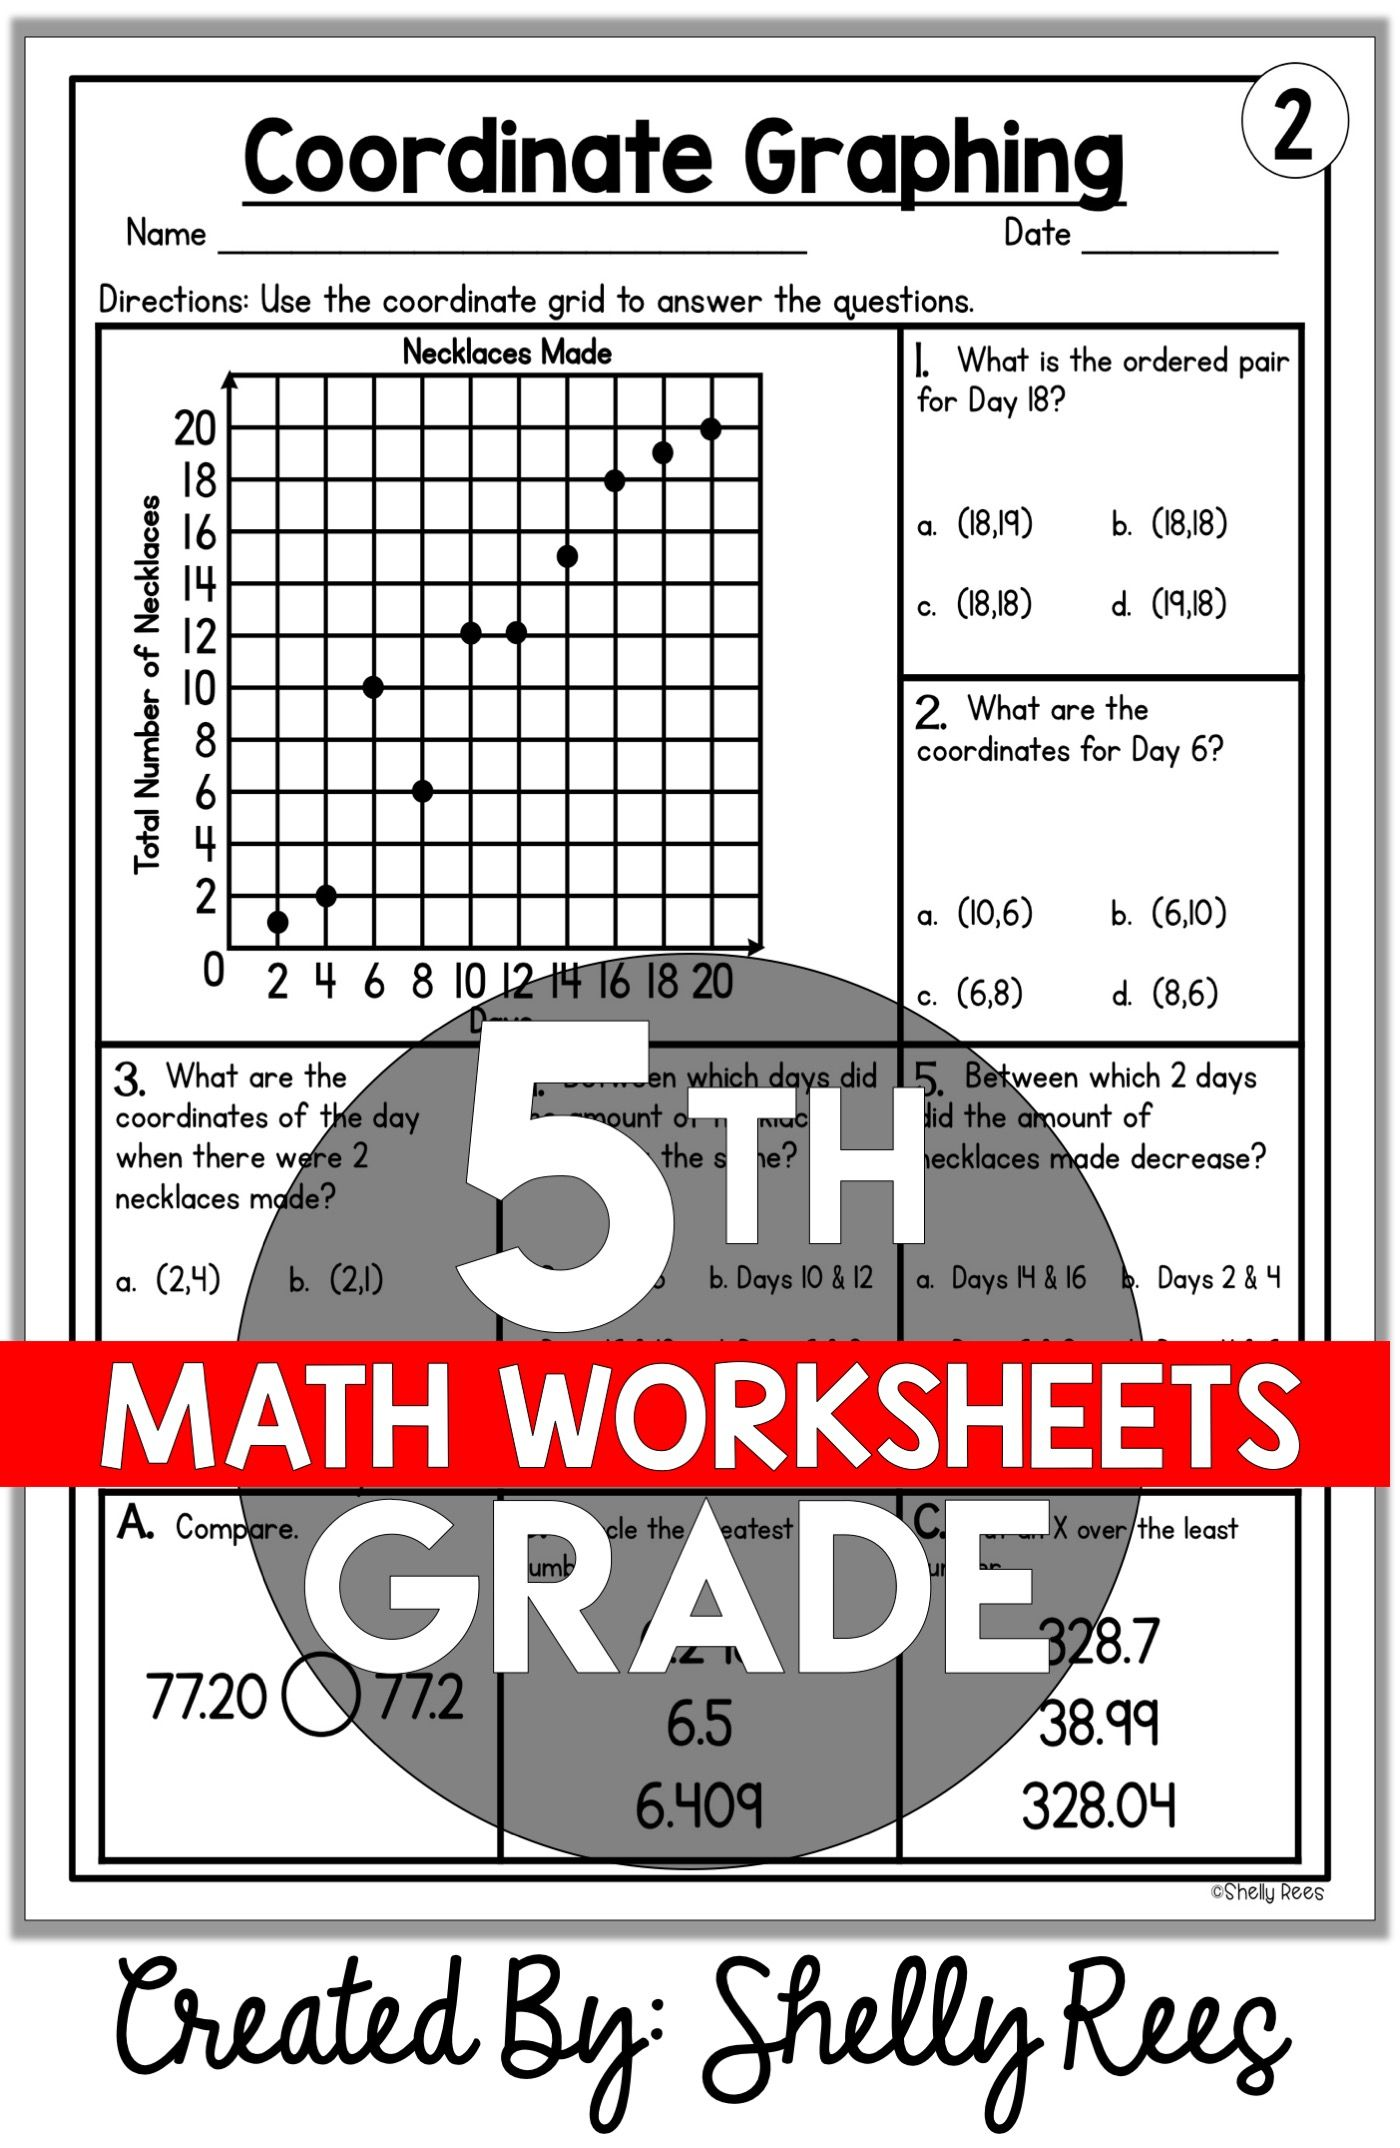 hight resolution of 5th Grade Math Worksheets Free and Printable - Appletastic Learning   Math  review worksheets